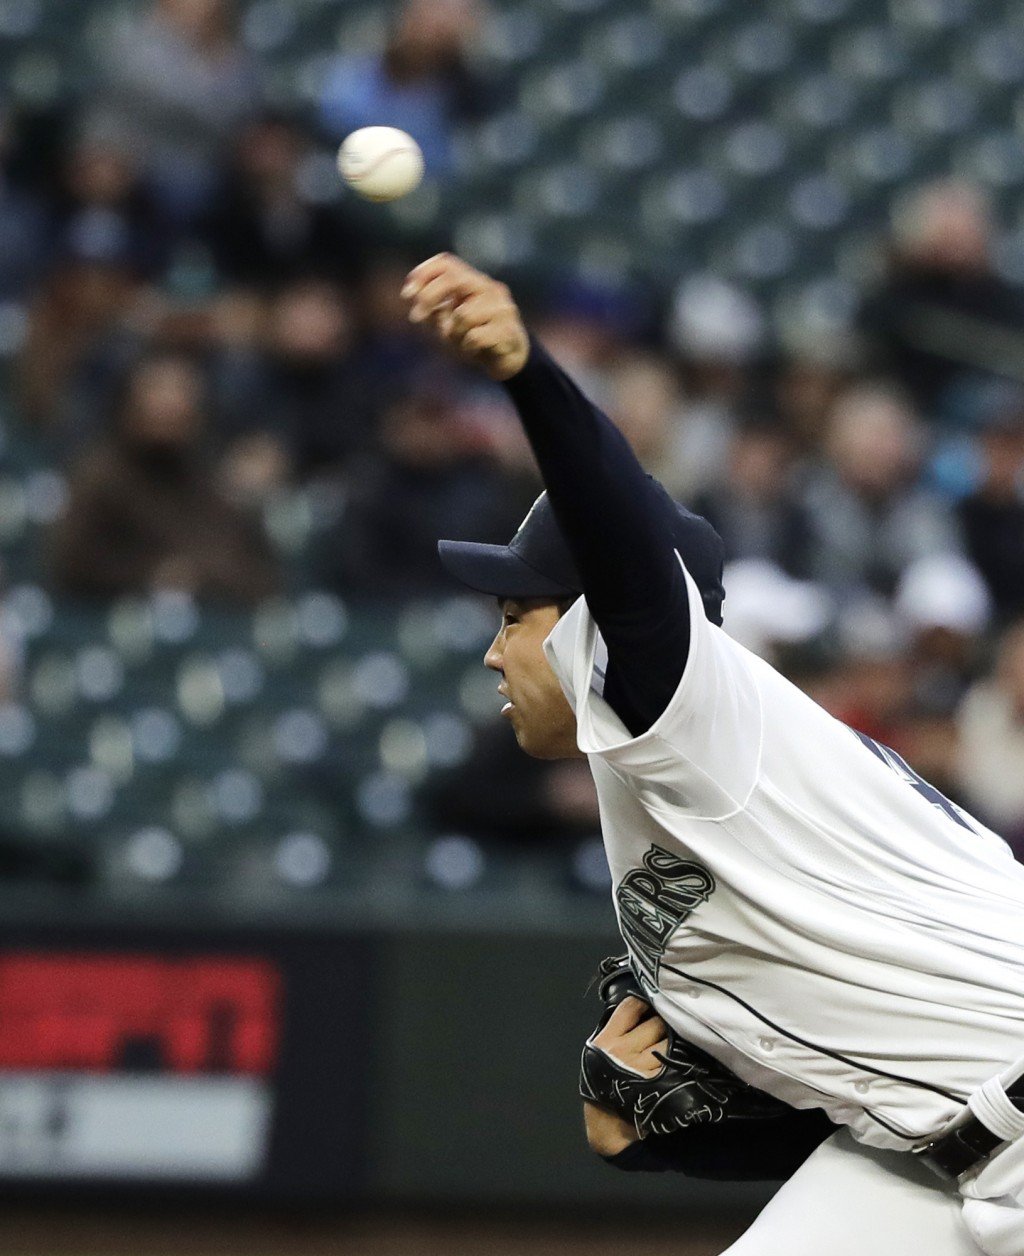 Seattle Mariners starting pitcher Yusei Kikuchi throws against the Cleveland Indians during the first inning of a baseball game, Monday, April 15, 201